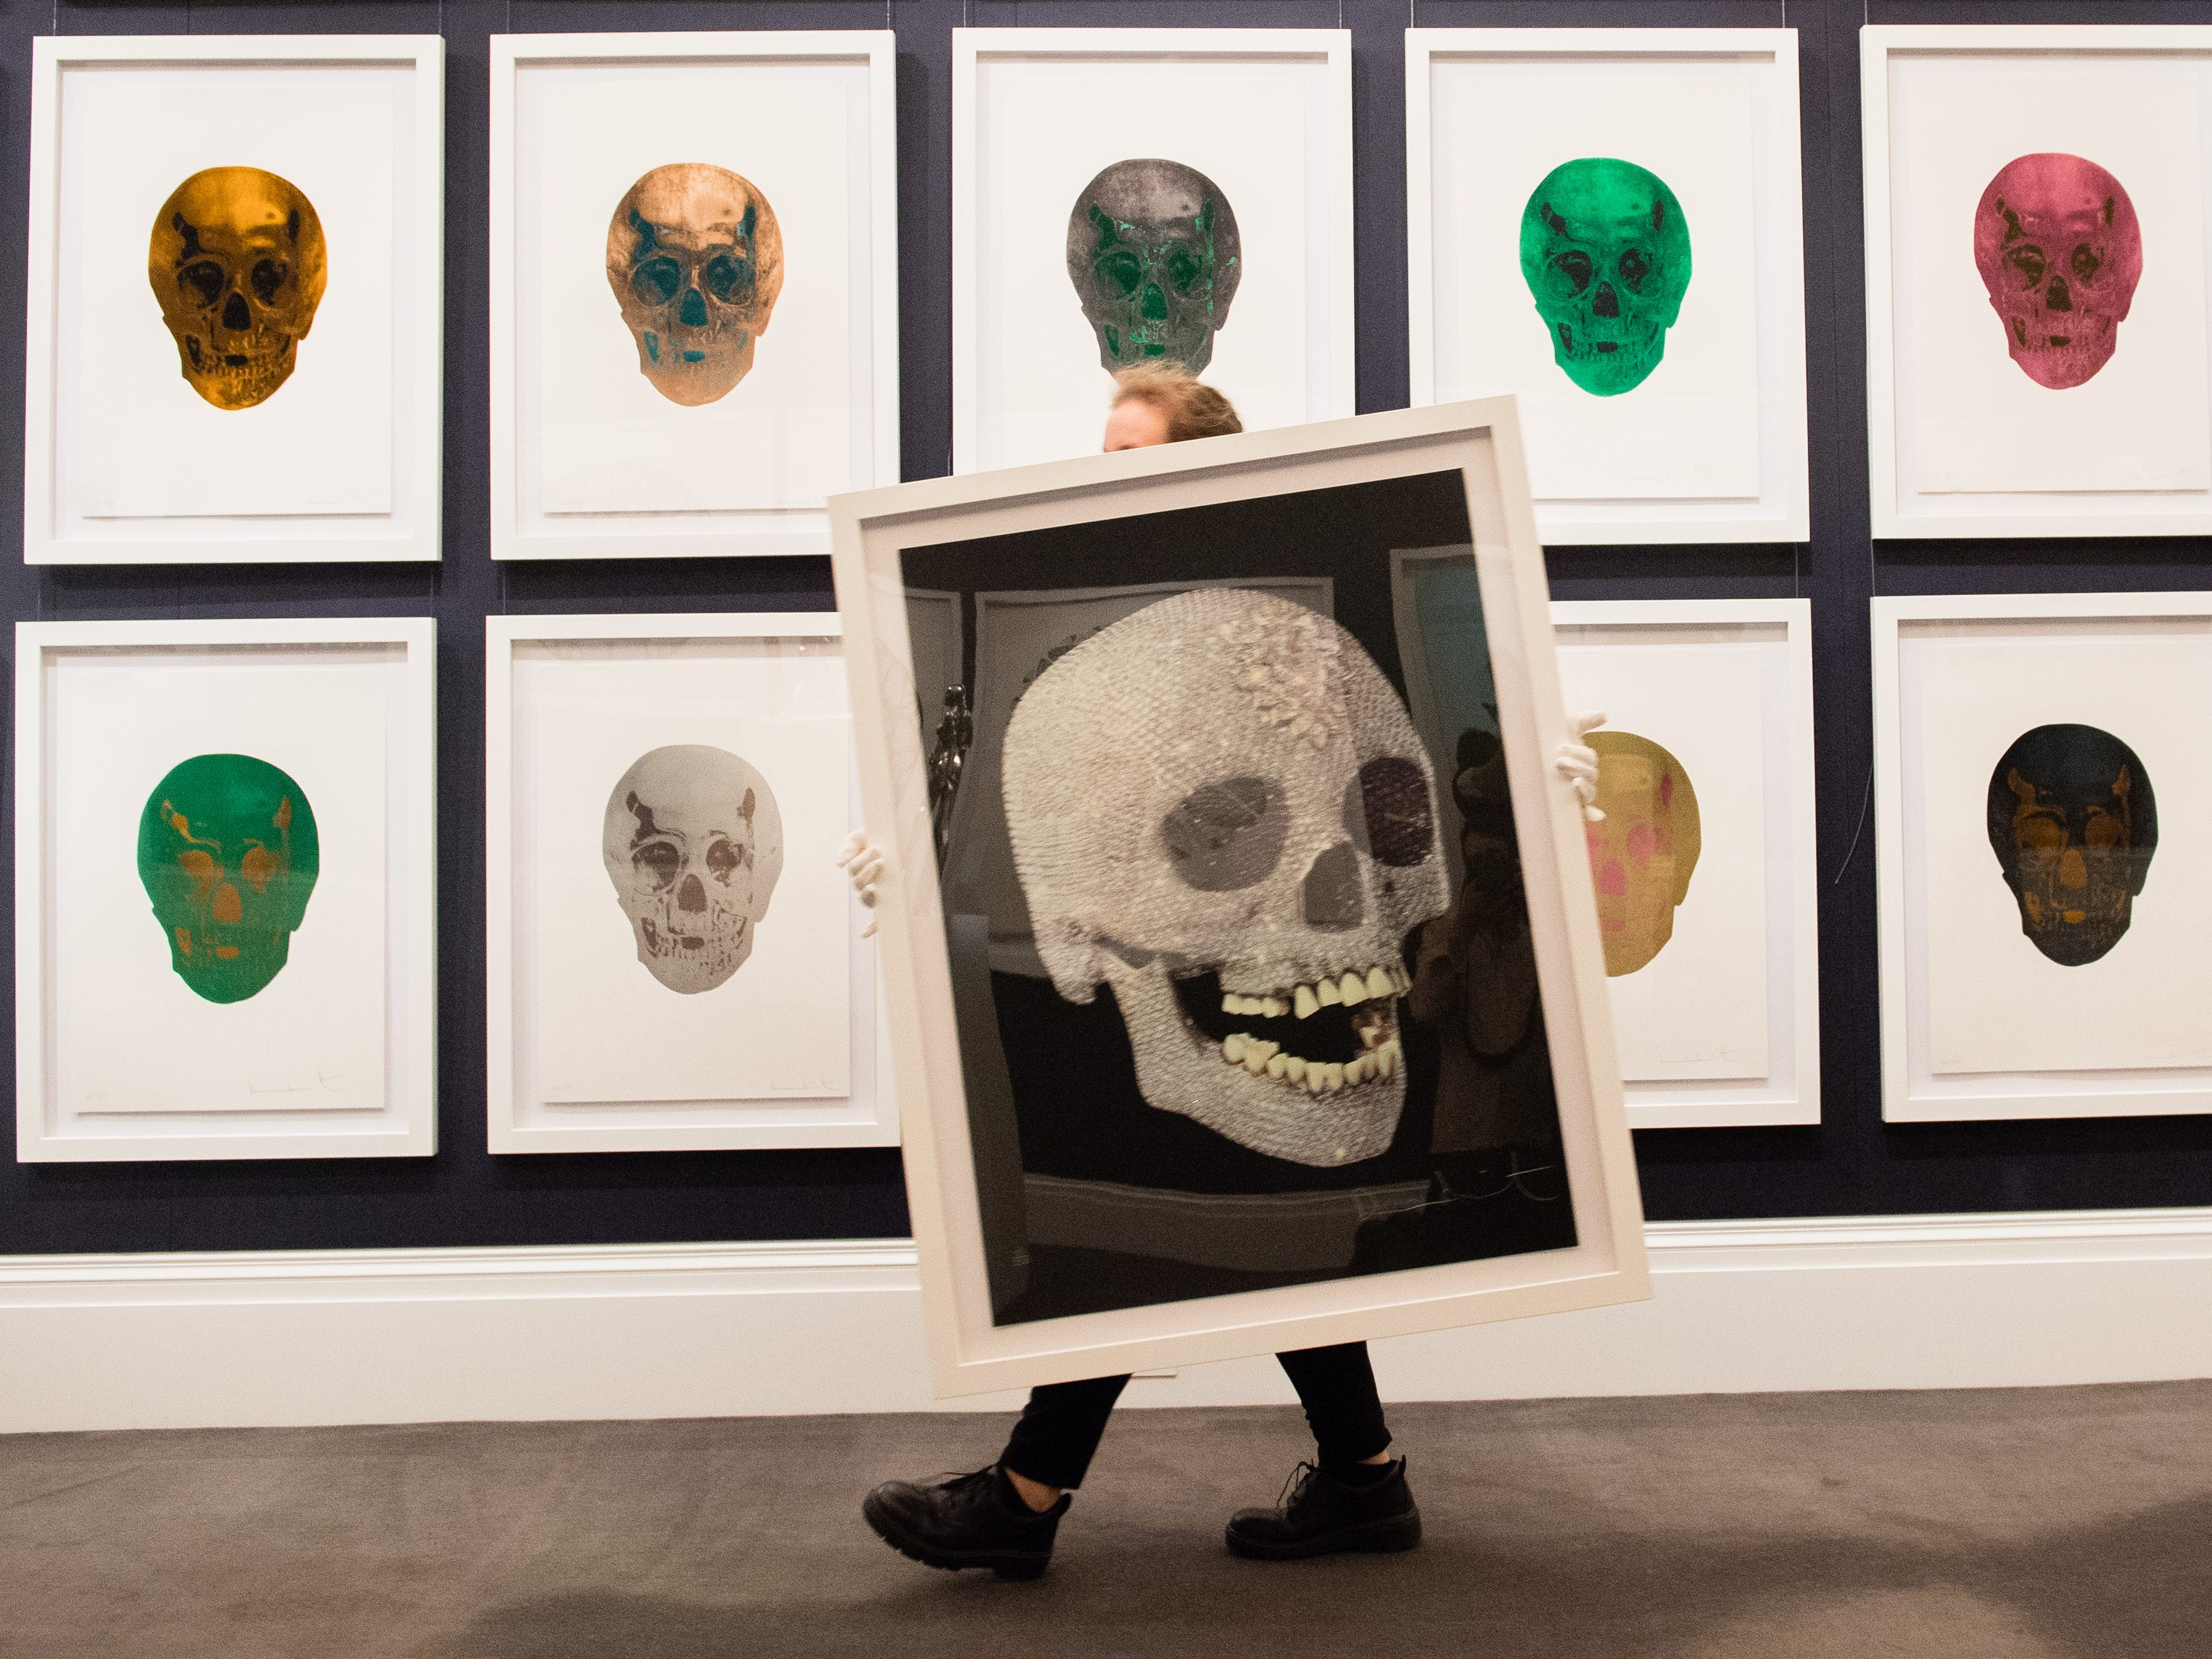 Over 200 works from the collection of Lorna and Frank Dunphy, former business manager to Damien Hirst, go on exhibition at Sotheby's ahead of their auction next week on September 14, 2018 in London, England.